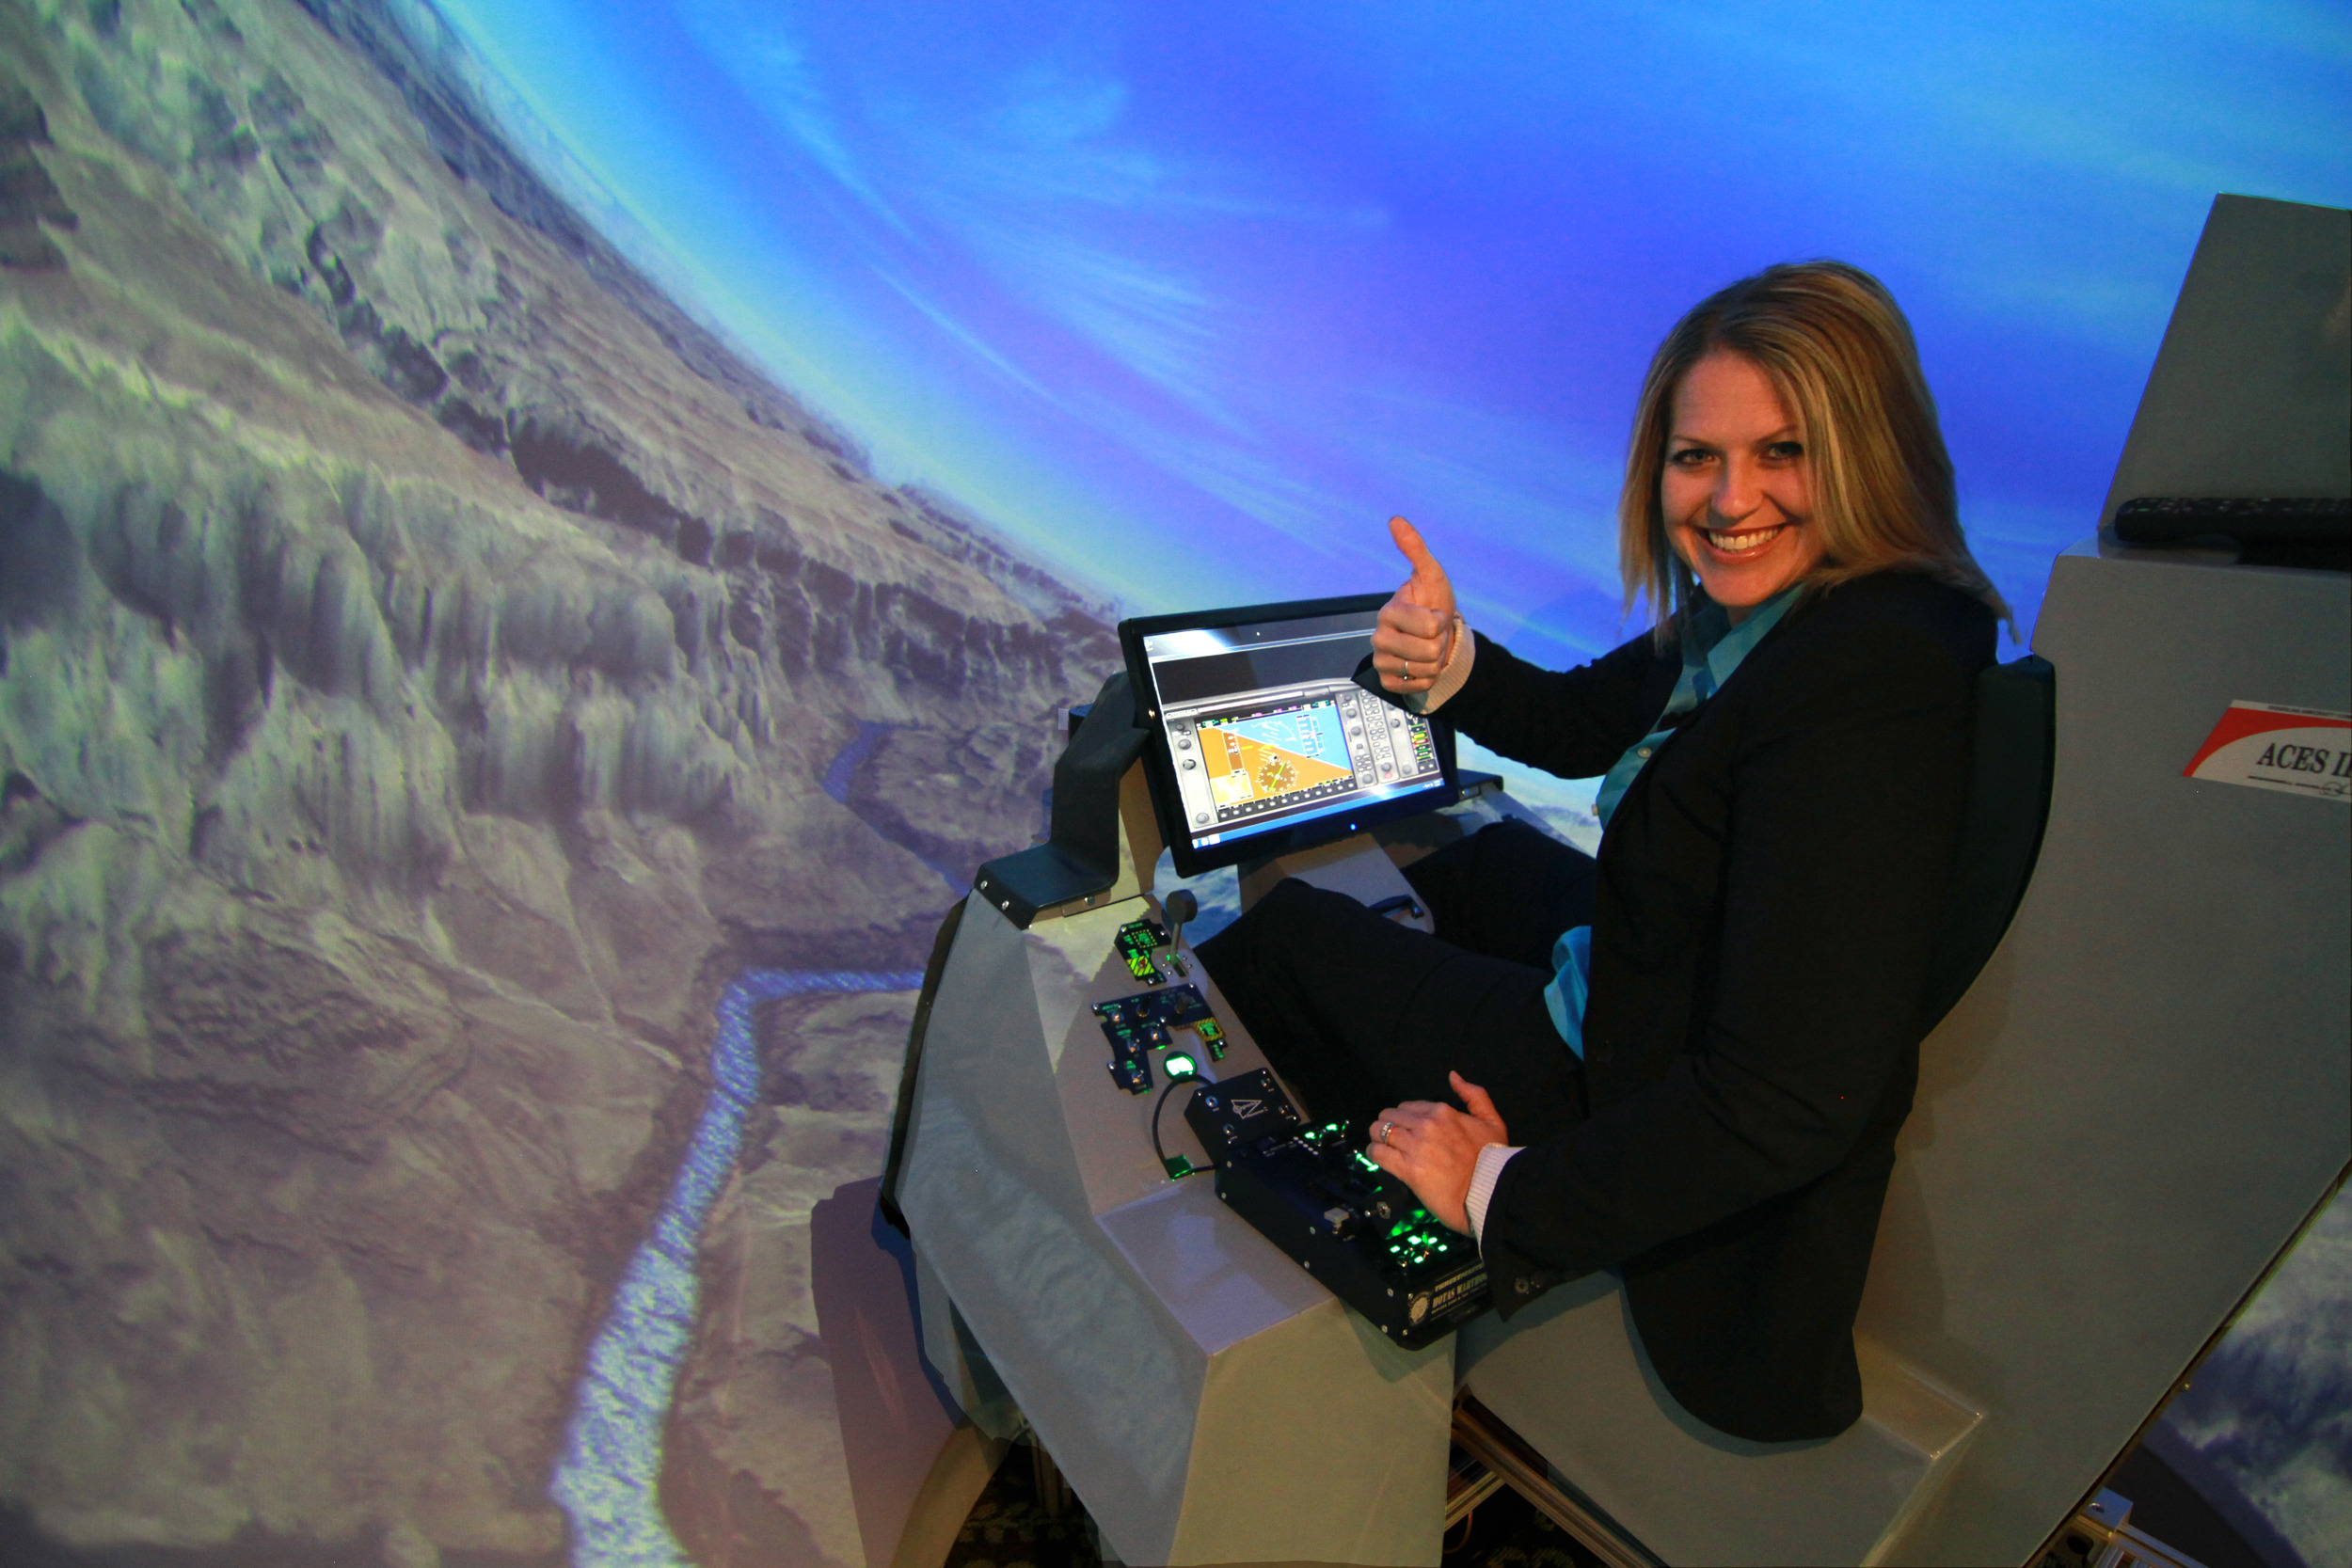 JSAA AEROSPACE COORDINATOR CAMI DEBISE TEST FLIES THE SURROUND VIEW FLIGHT SIMULATOR OVER THE GRAND CANYON